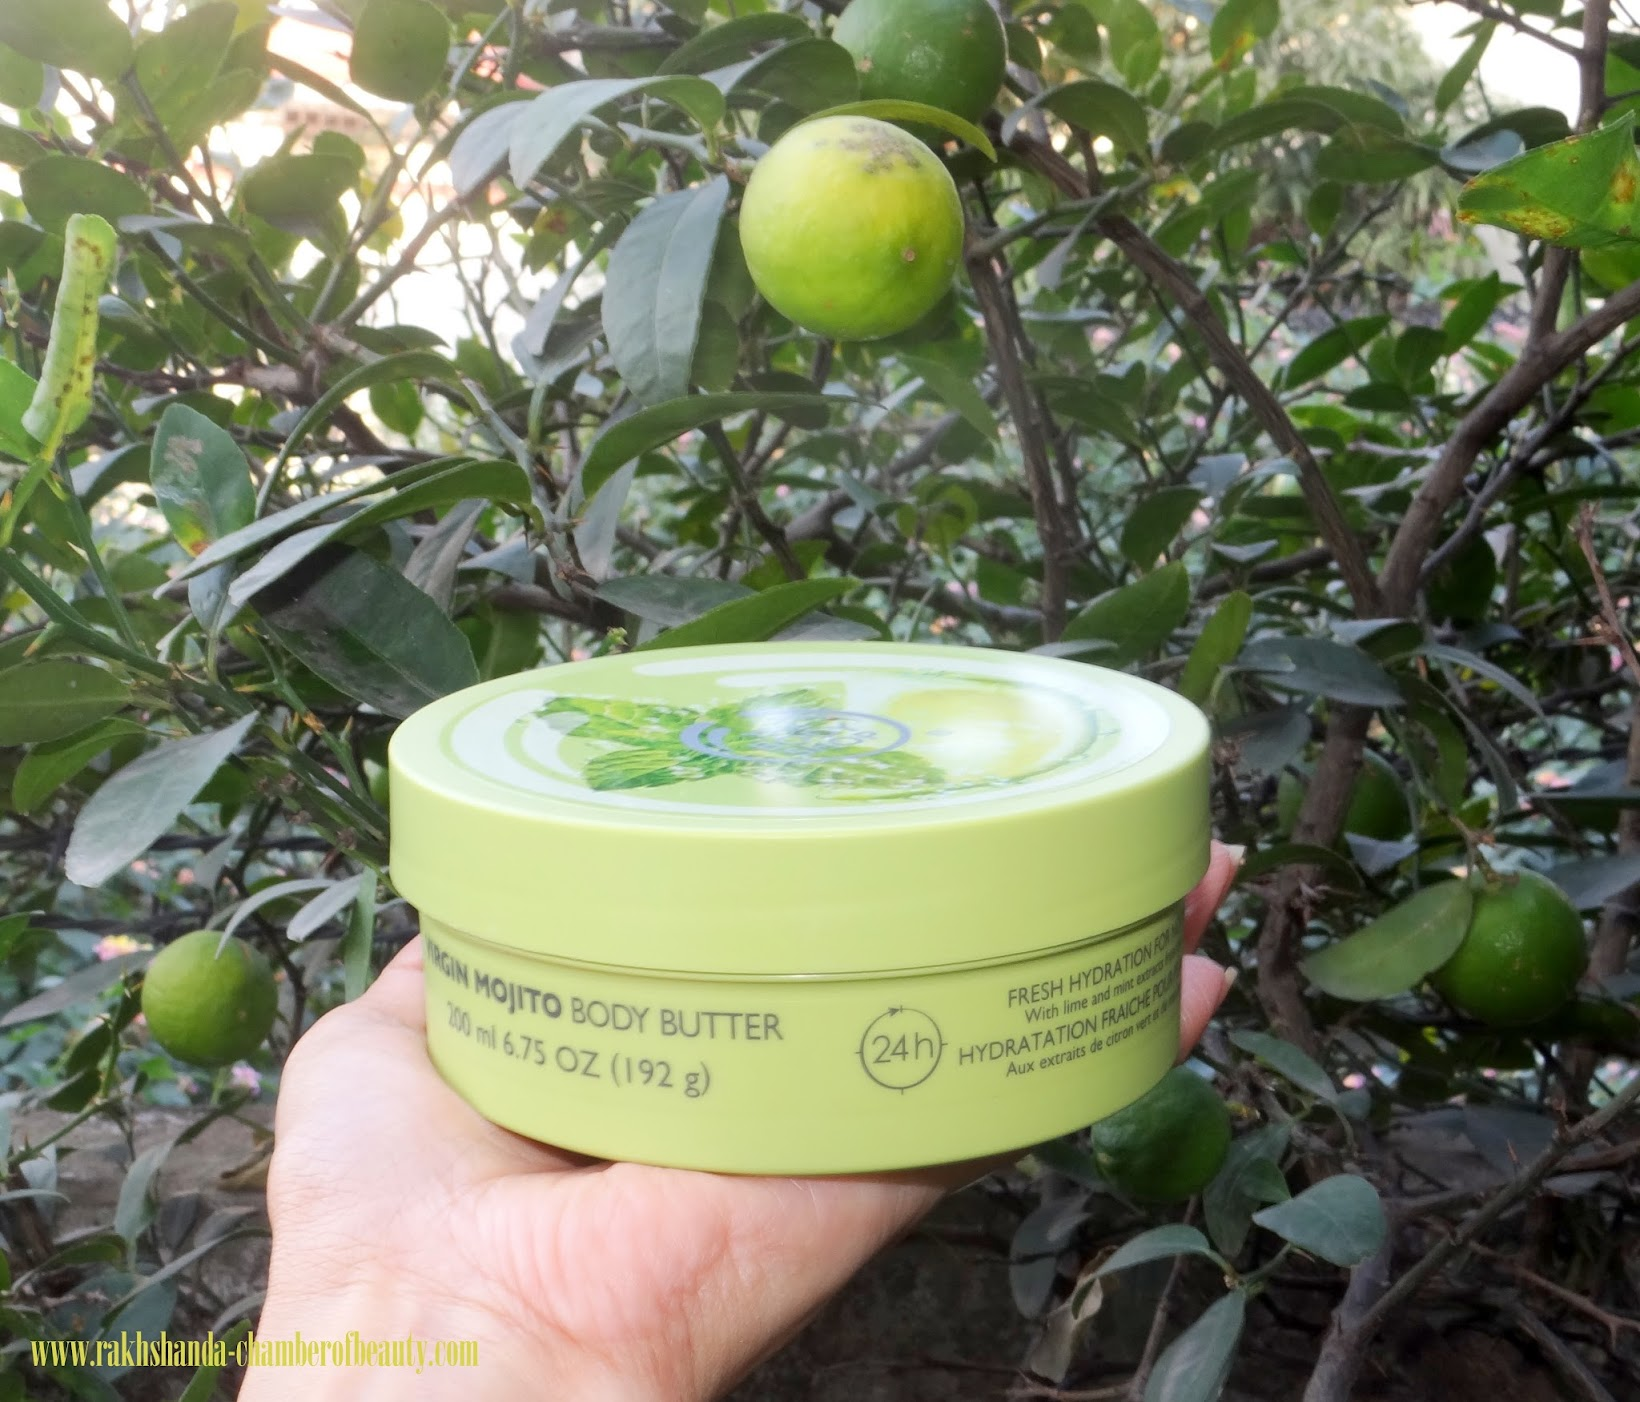 The Body Shop Virgin Mojito Body Butter Review, body butter, The Body Shop, Indian beauty blogger, The Body Shop Virgin Mojito  range in India, review, the body shop body butter review and swatches, Virgin Mojito body butter review, Chamber Of Beauty, body care, body moisturiser